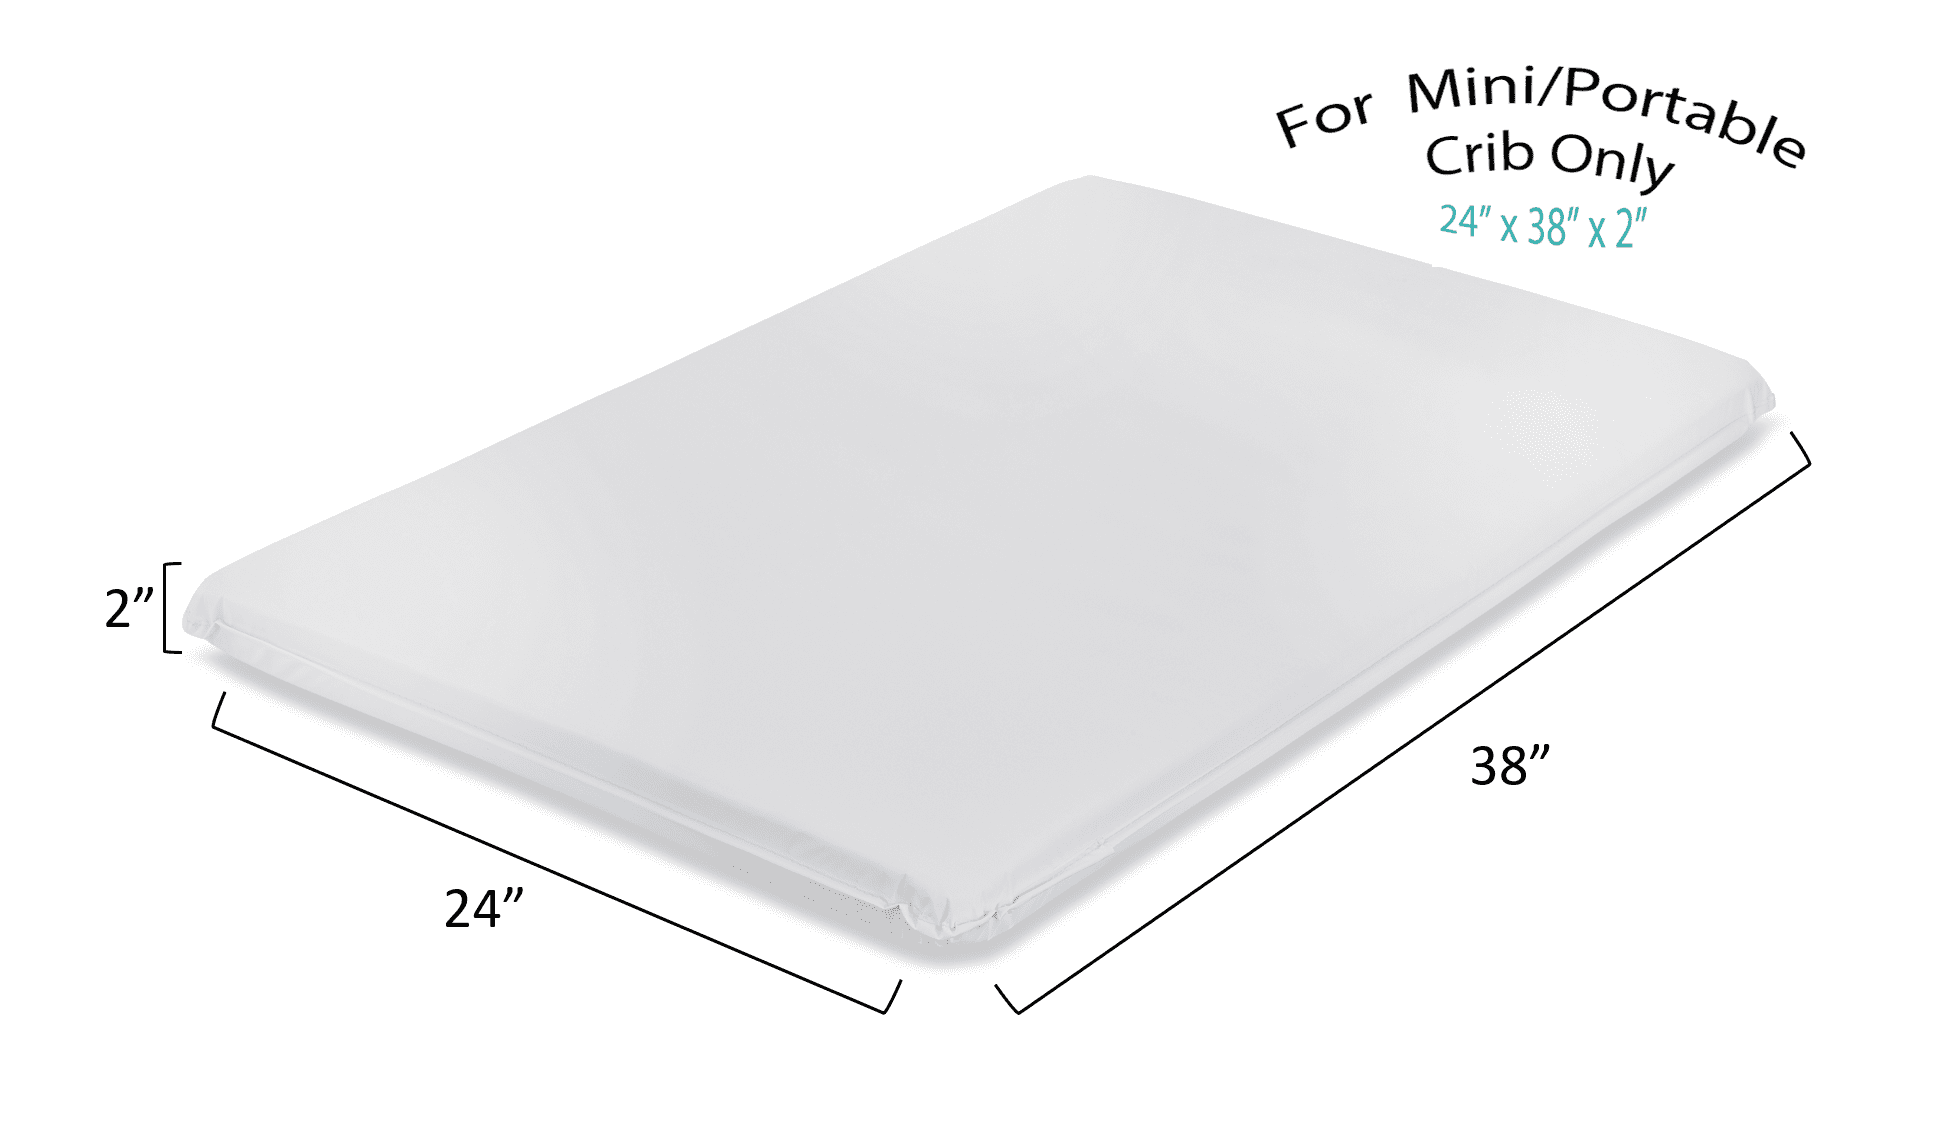 LA Baby 2 Waterproof Mini Portable Crib Mattress Pad Non Full Size by LA Baby